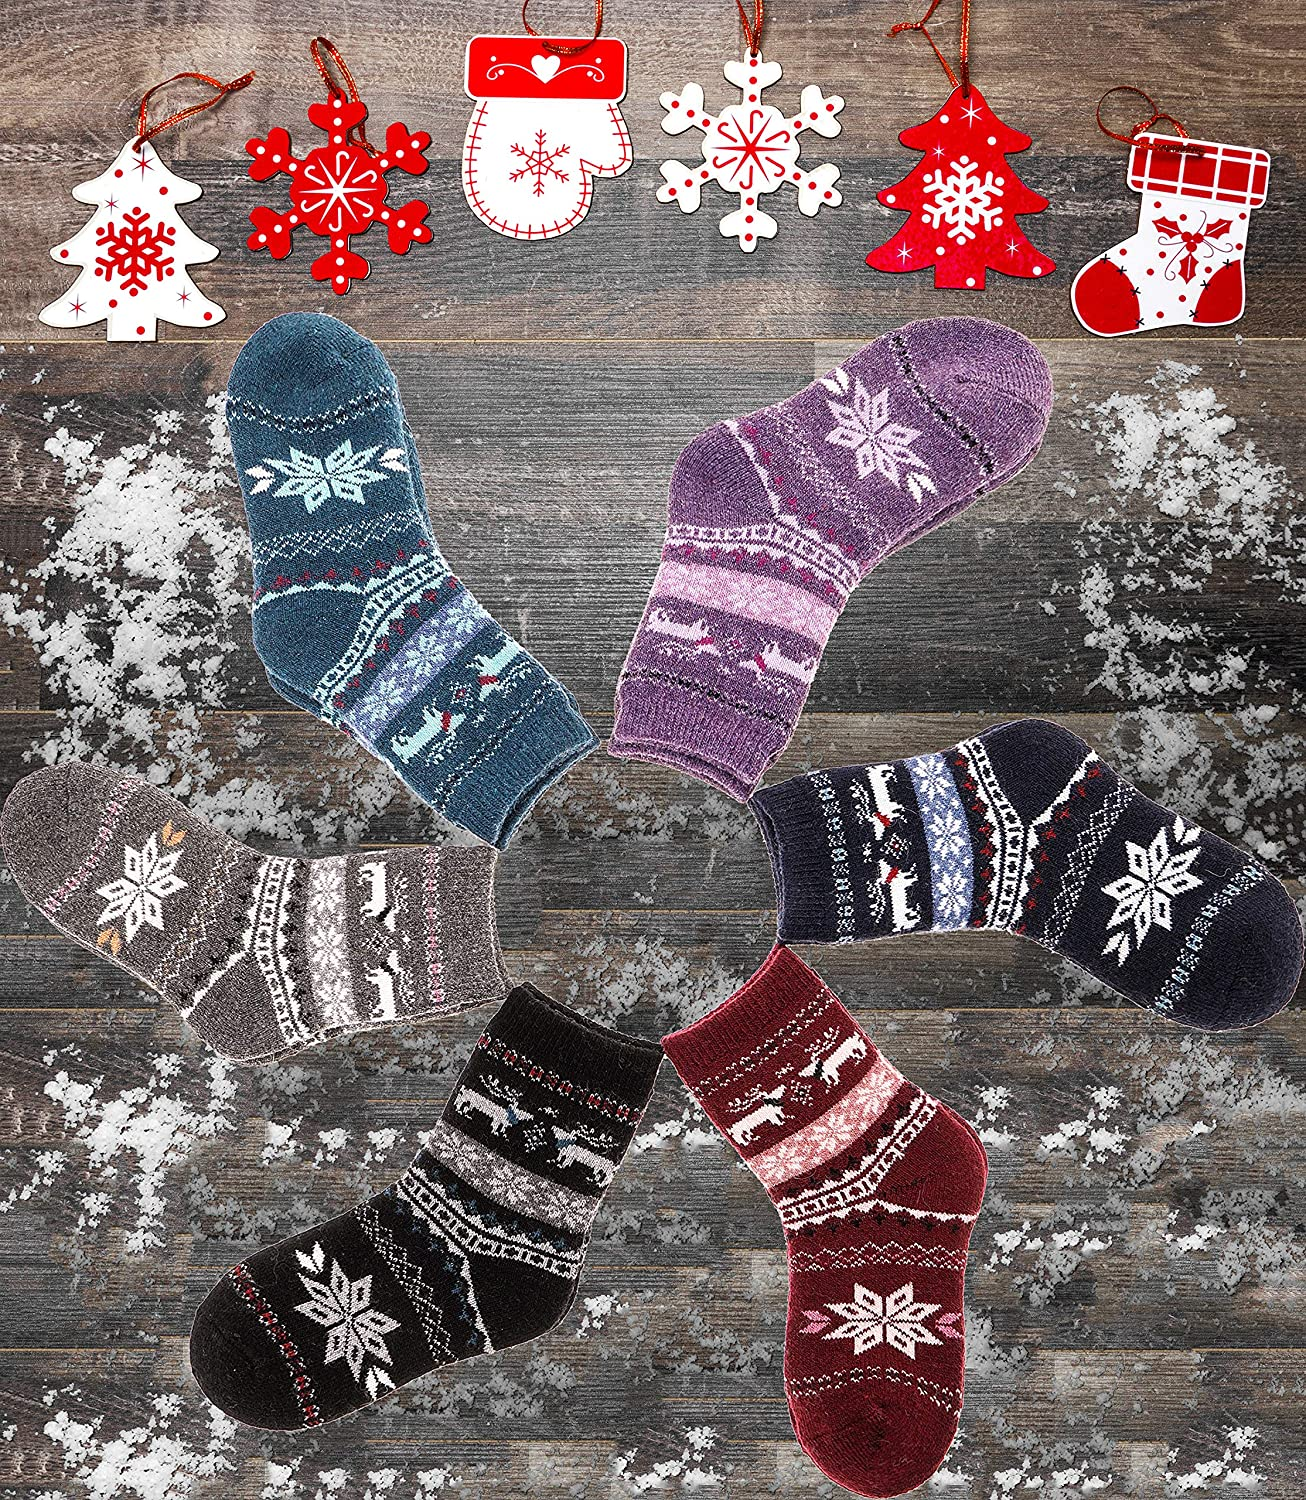 Childrens Wool Socks For Boy Girl Kid Thick Warm Thermal Cotton Winter Crew Socks 6 Pairs